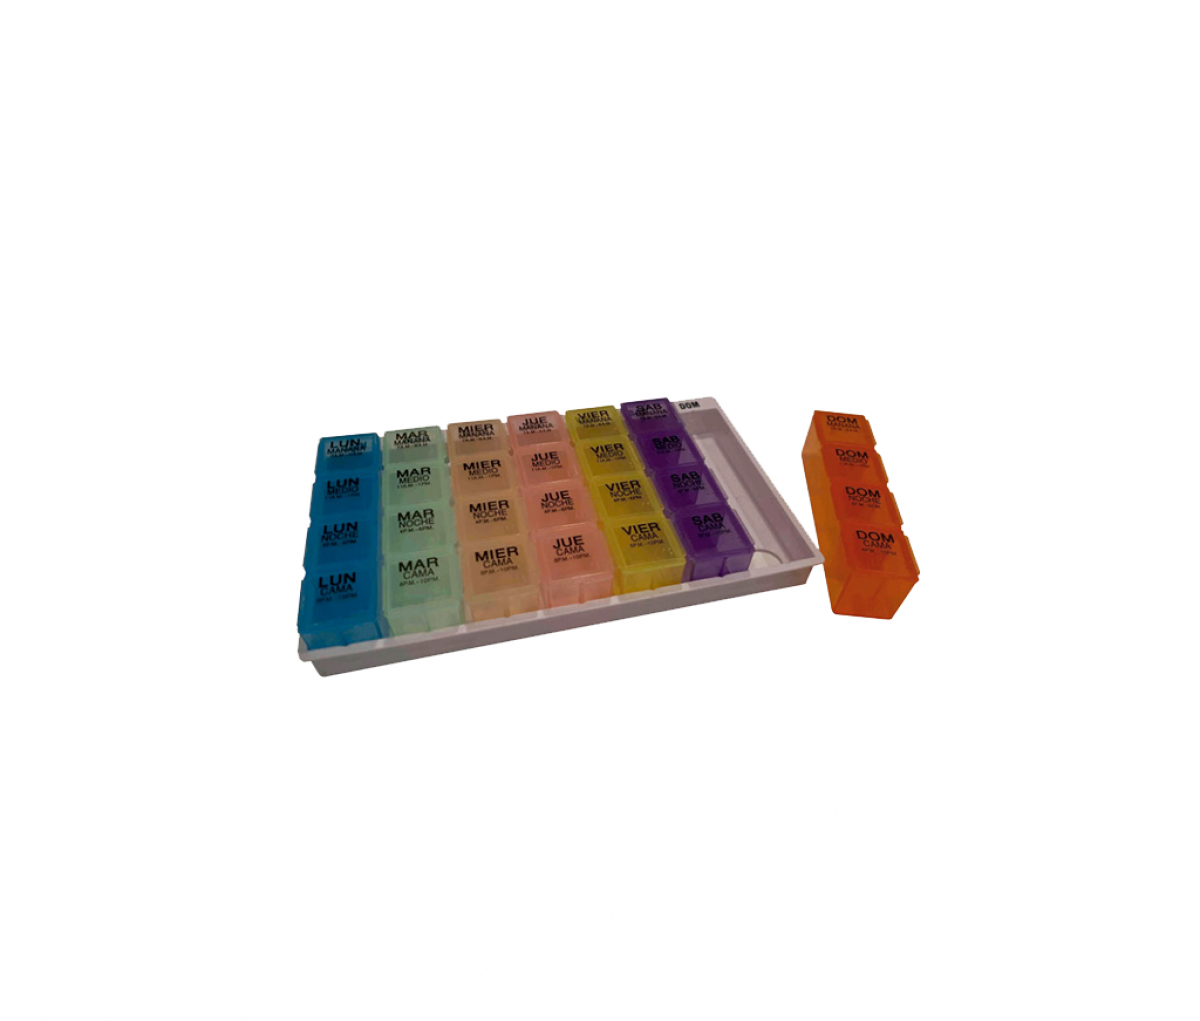 WEEKLY PILL ORGANISER 4 DOSES 516203